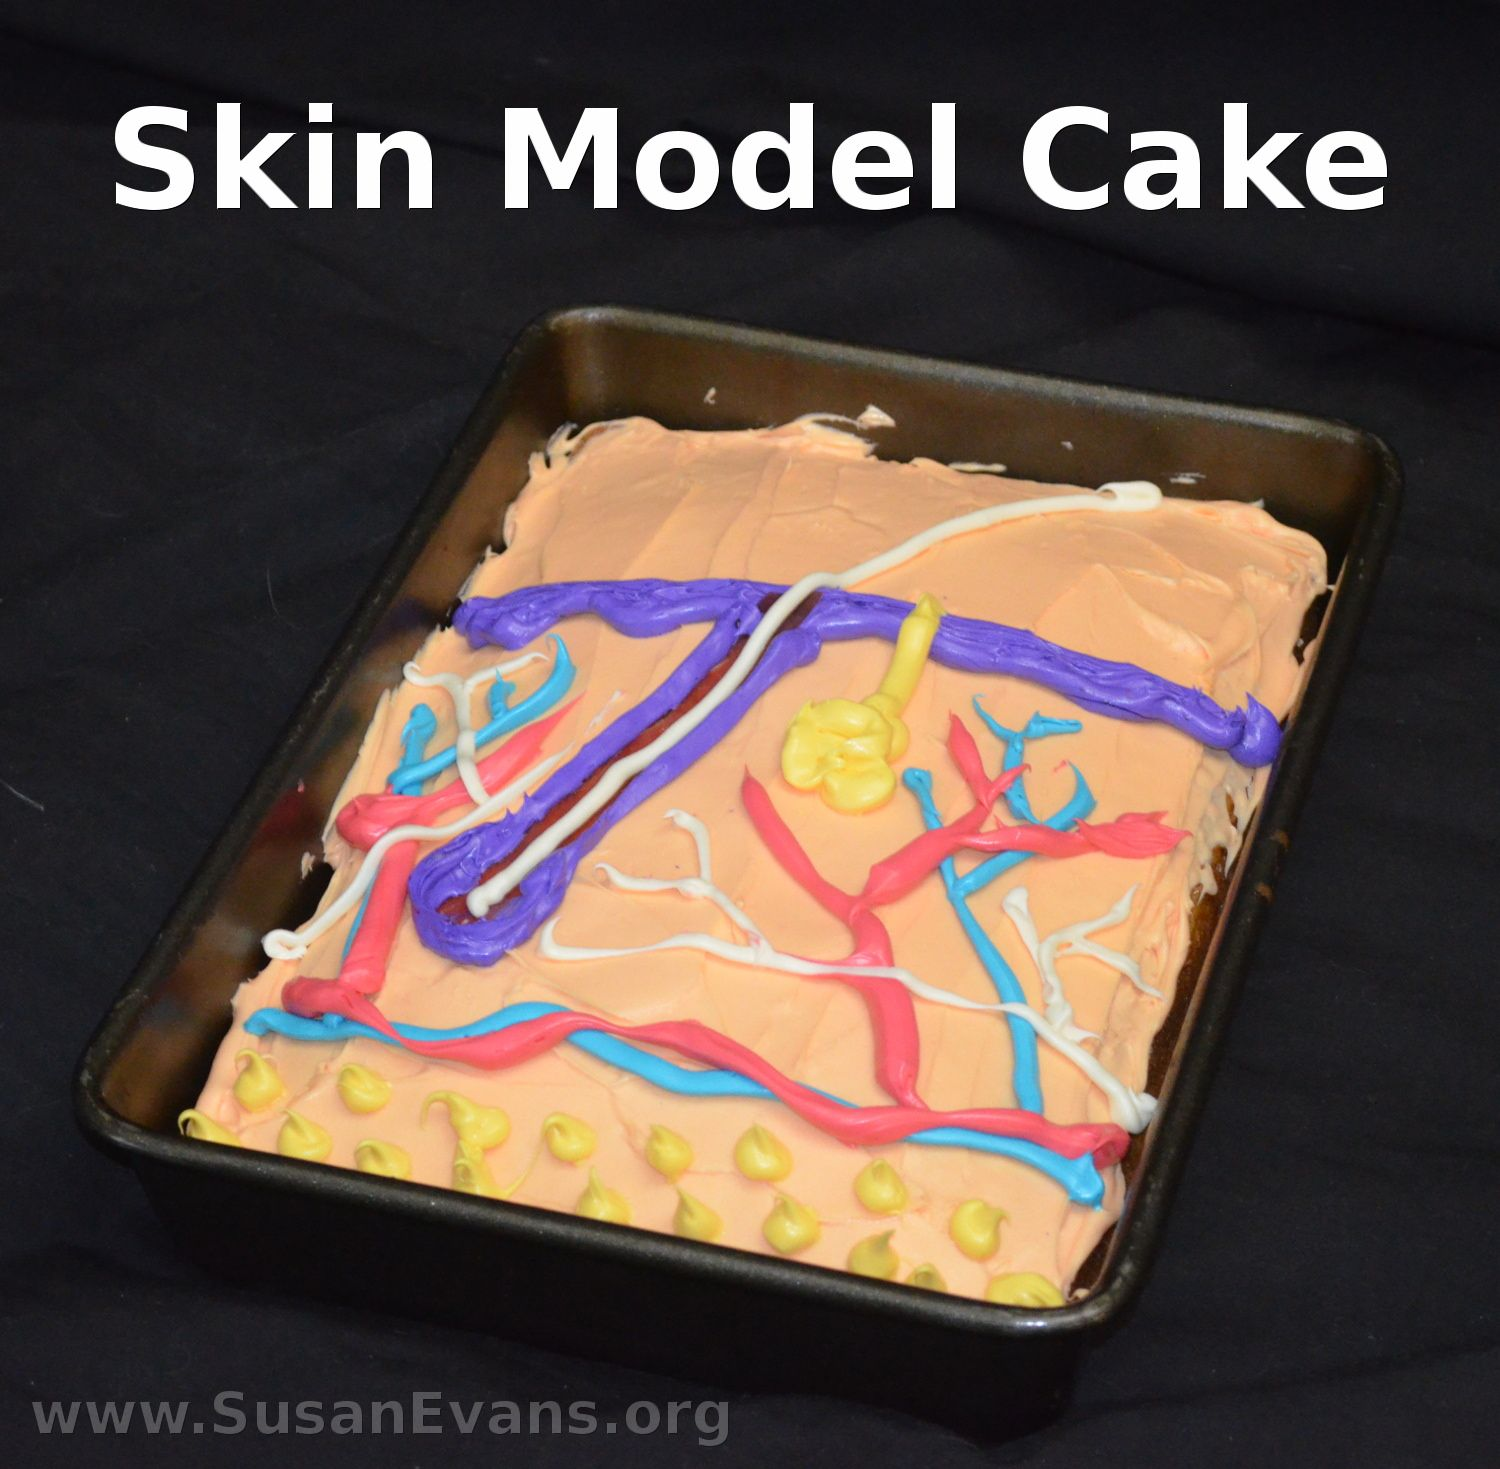 Skin Model Cake | HS: Science  Human Body | Human